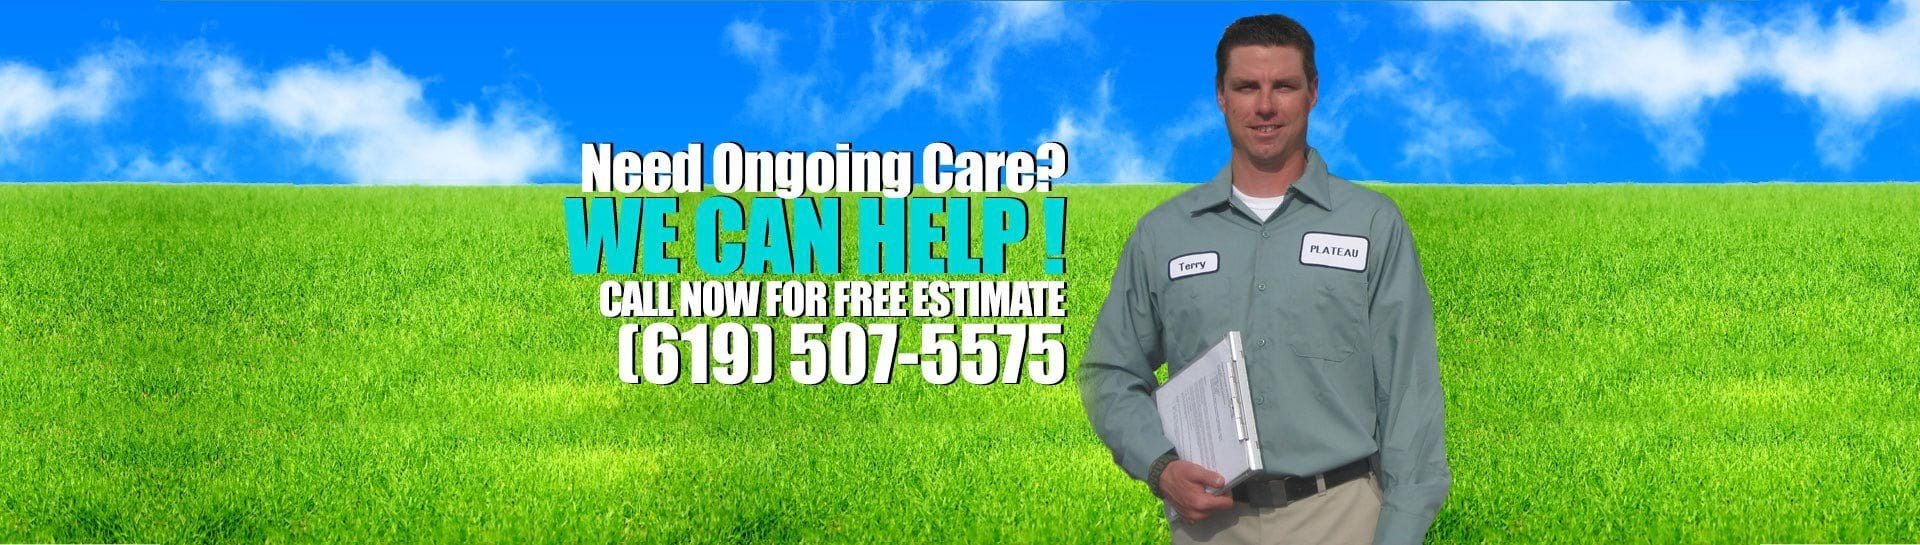 Need Ongoing Care?